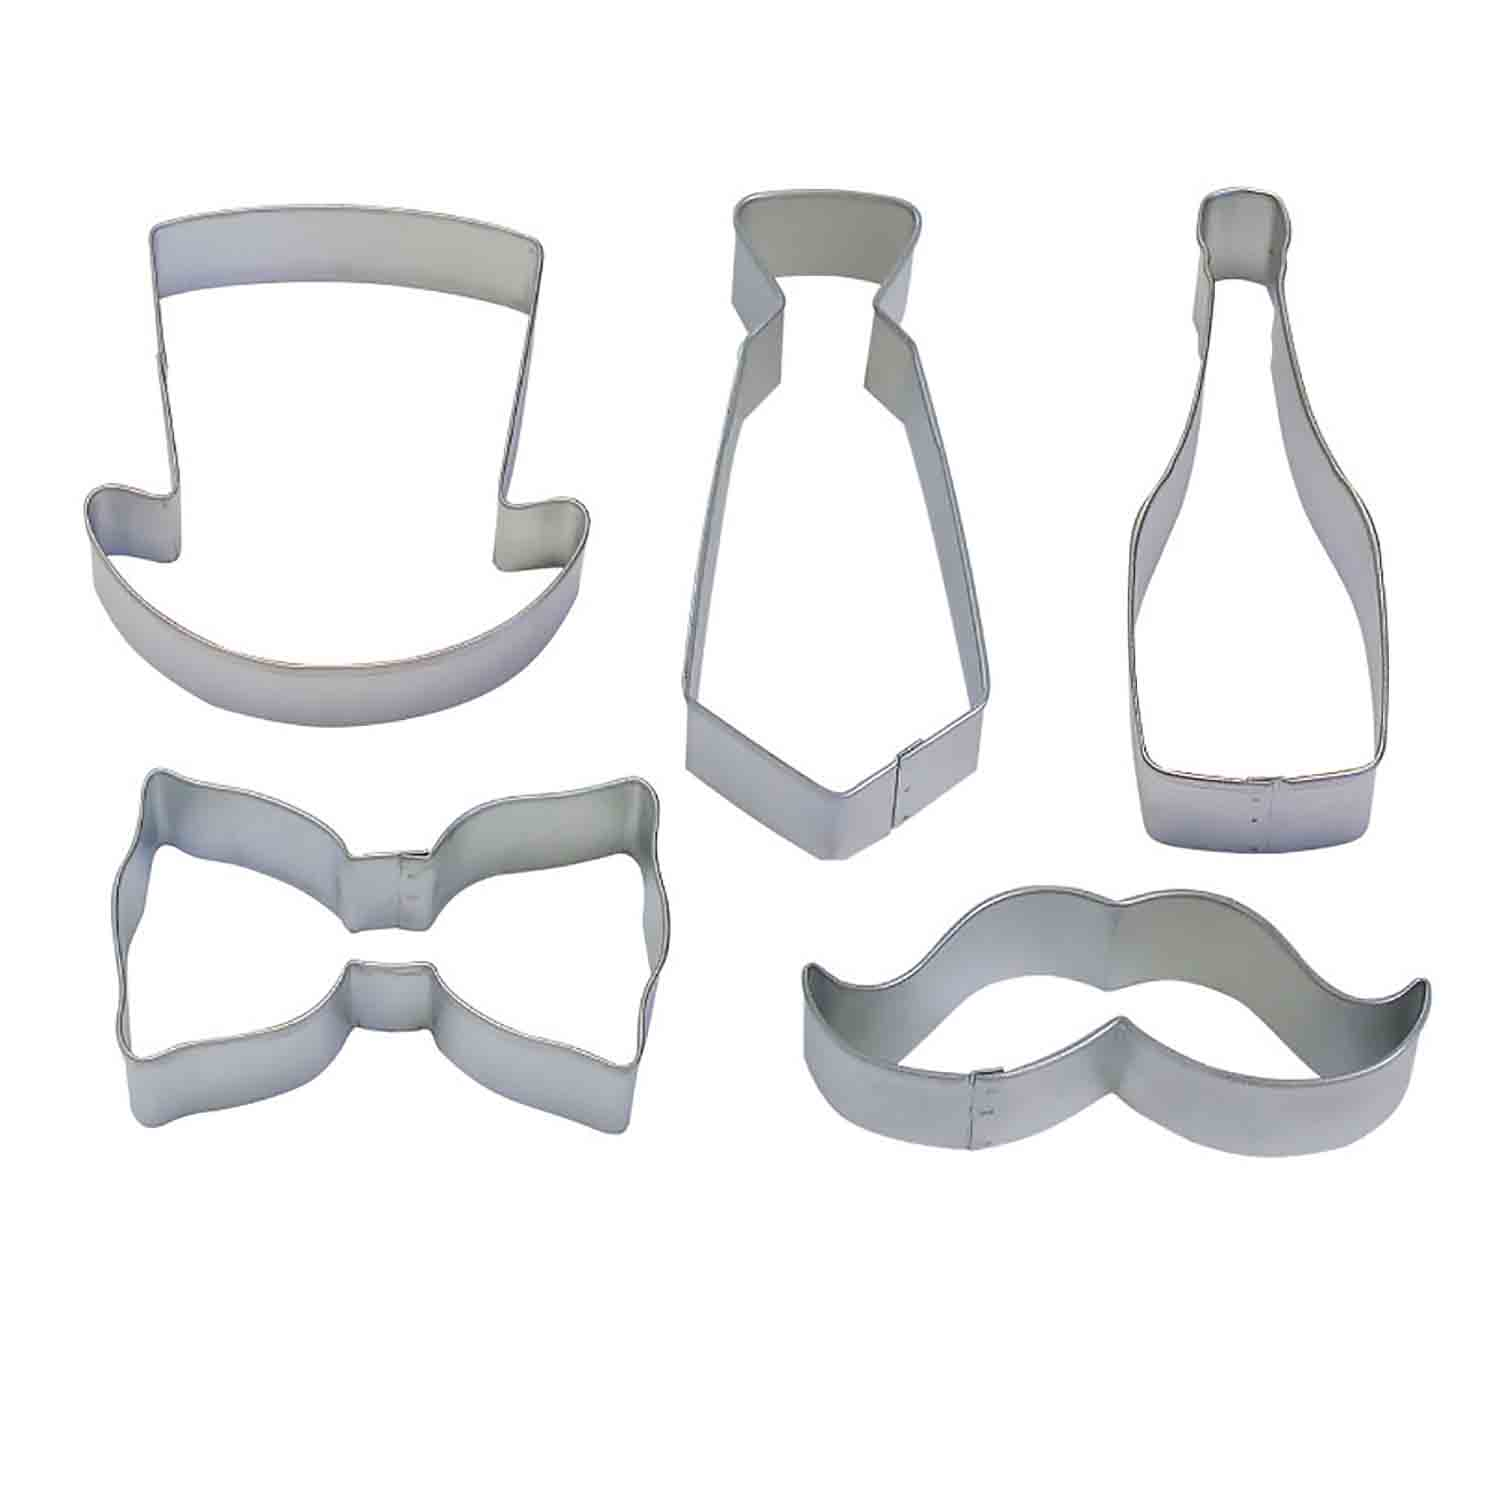 Gents Night Cookie Cutter Set